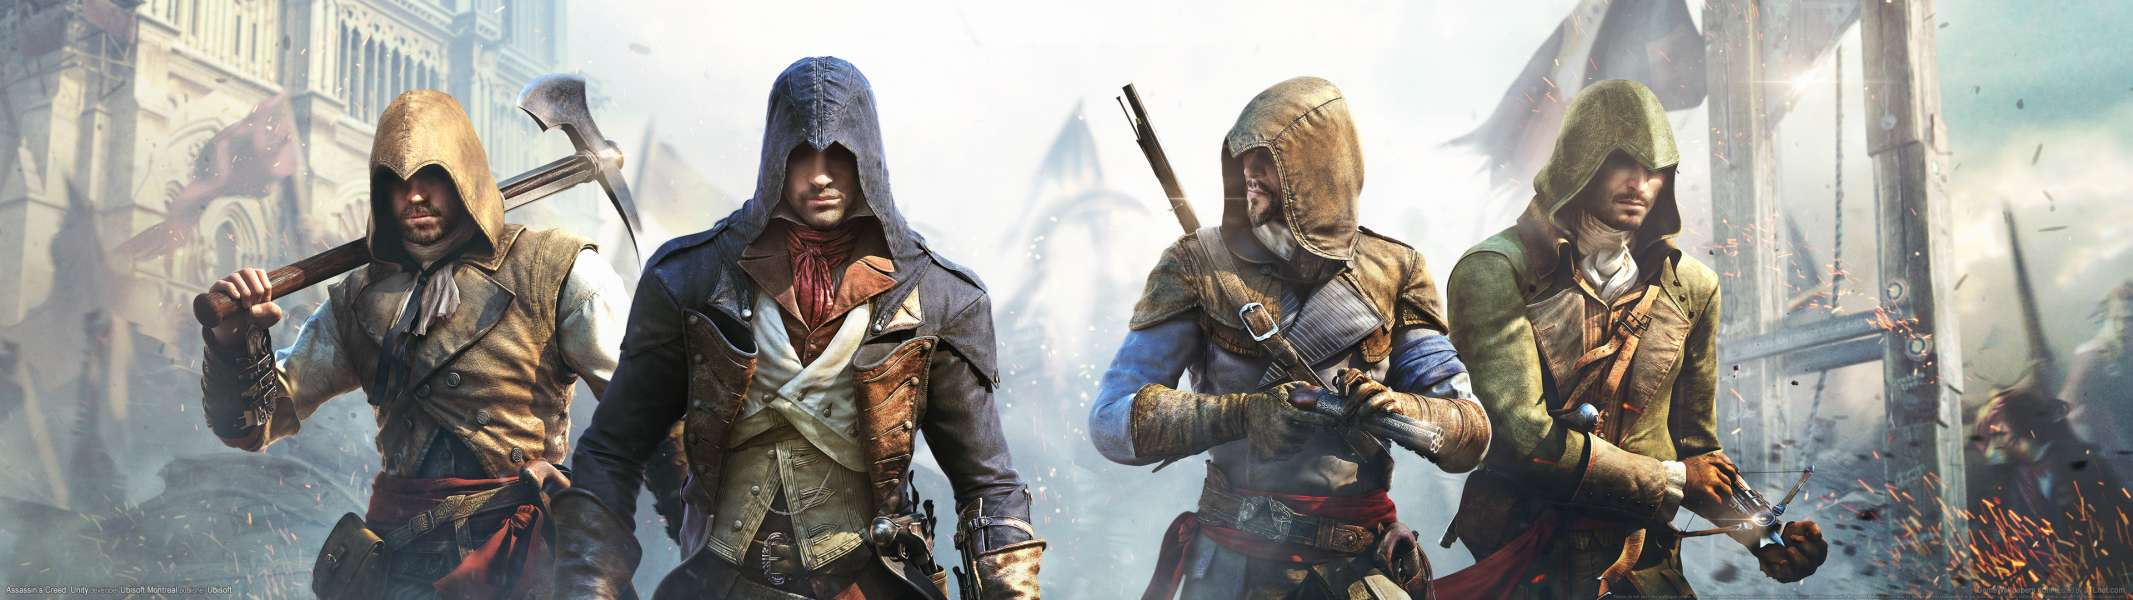 Assassin's Creed: Unity dual screen wallpaper or background